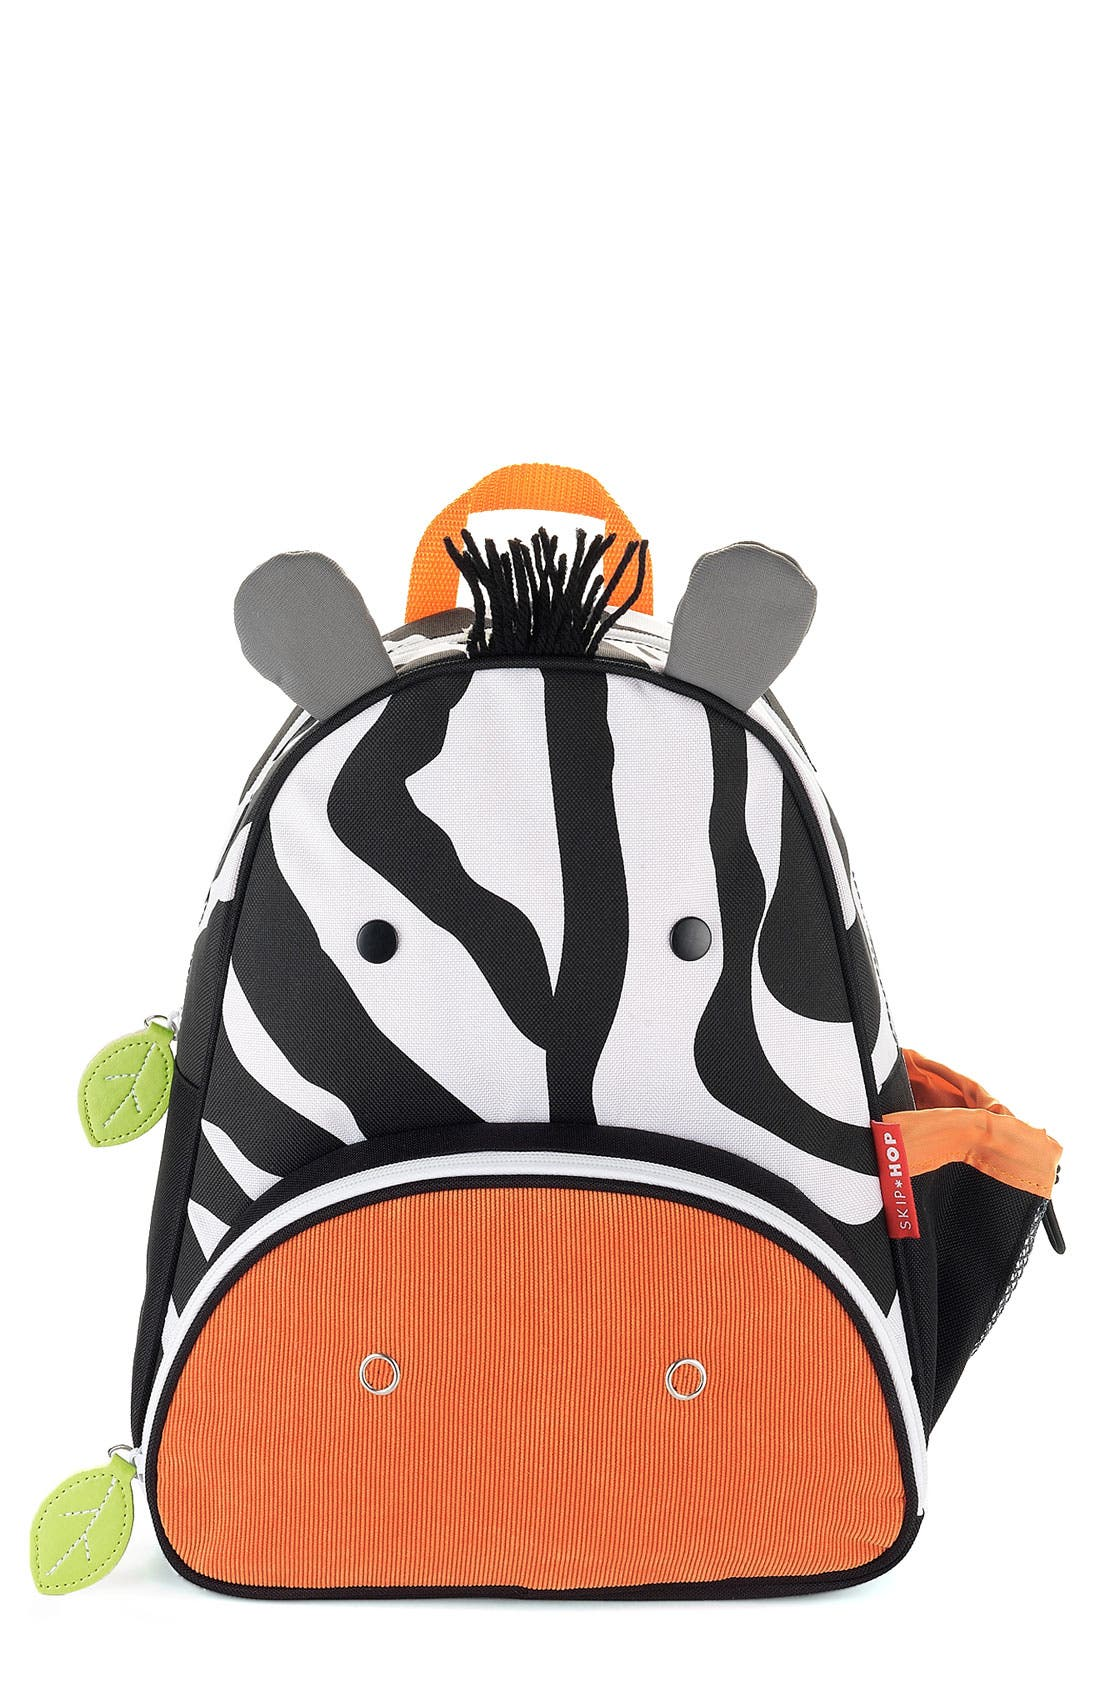 Zoo Pack Backpack,                         Main,                         color, White/ Black